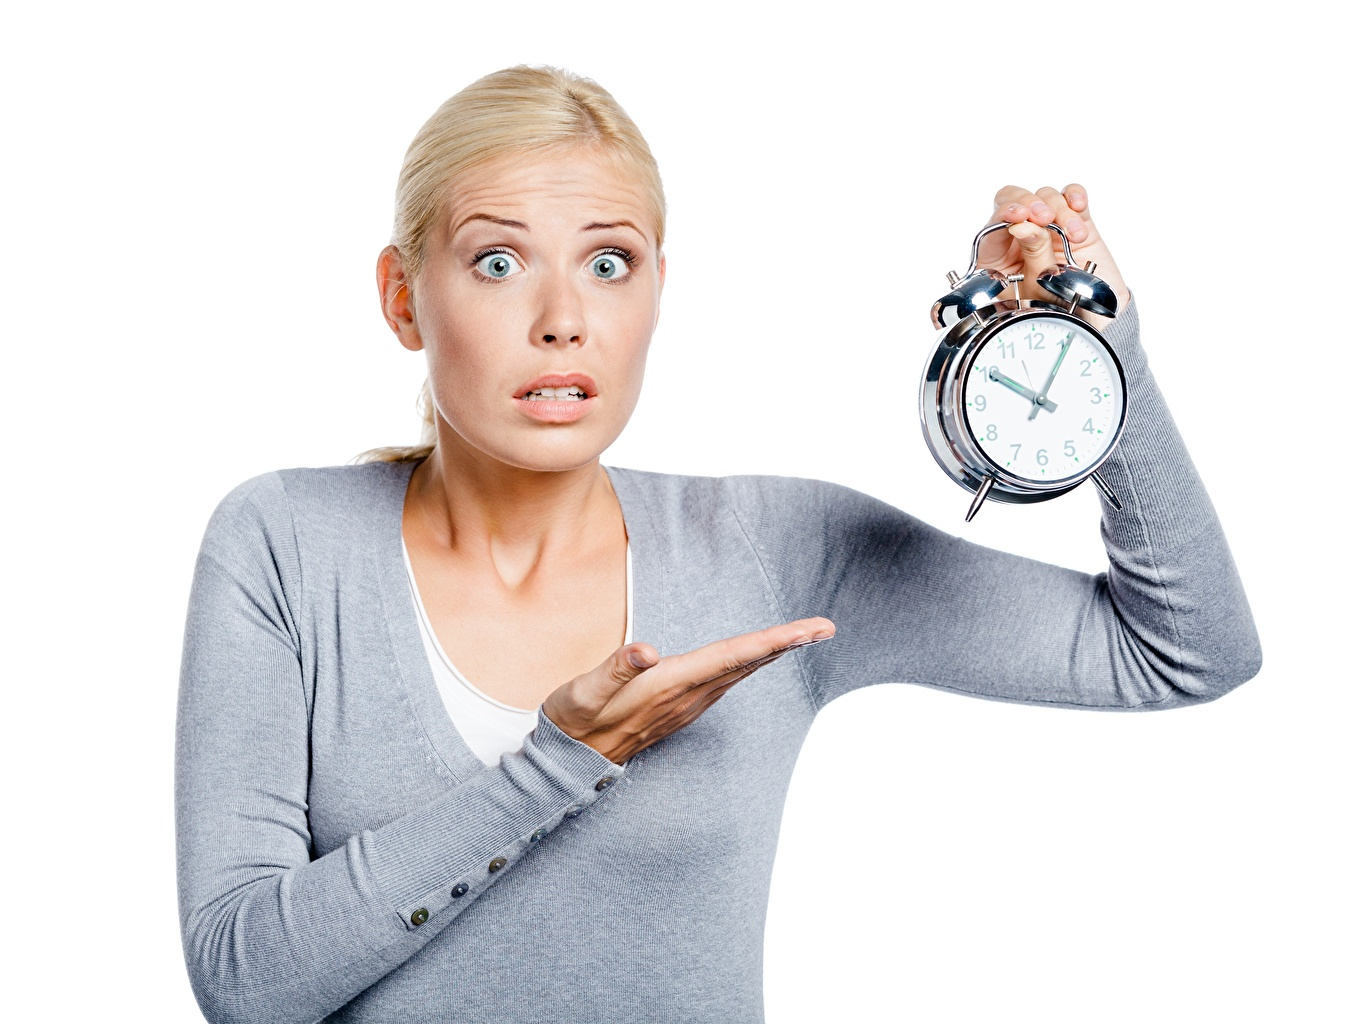 Wallpaper Blonde girl surprised Girls Alarm clock Hands White background amazement Surprise emotion female young woman